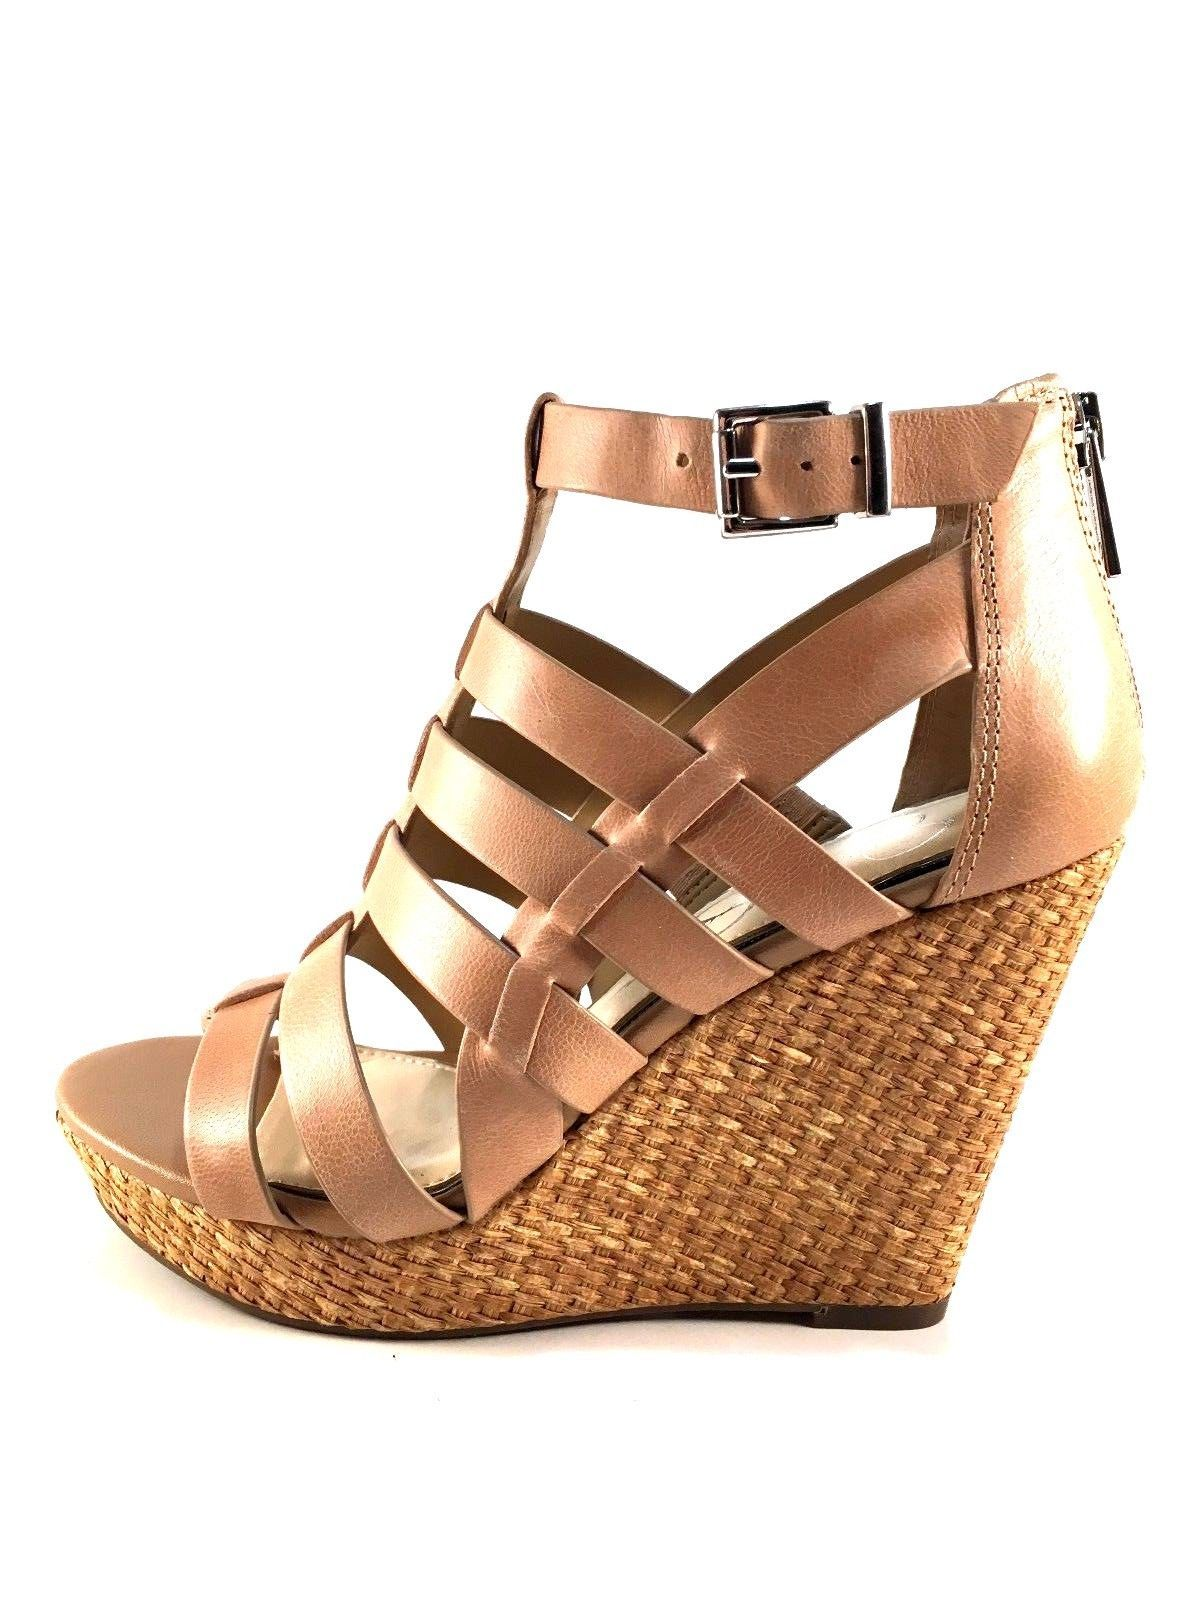 Jessica Simpson Jeyne Leather Platform Wedge Closed Back Sandals Choose Sz/Color